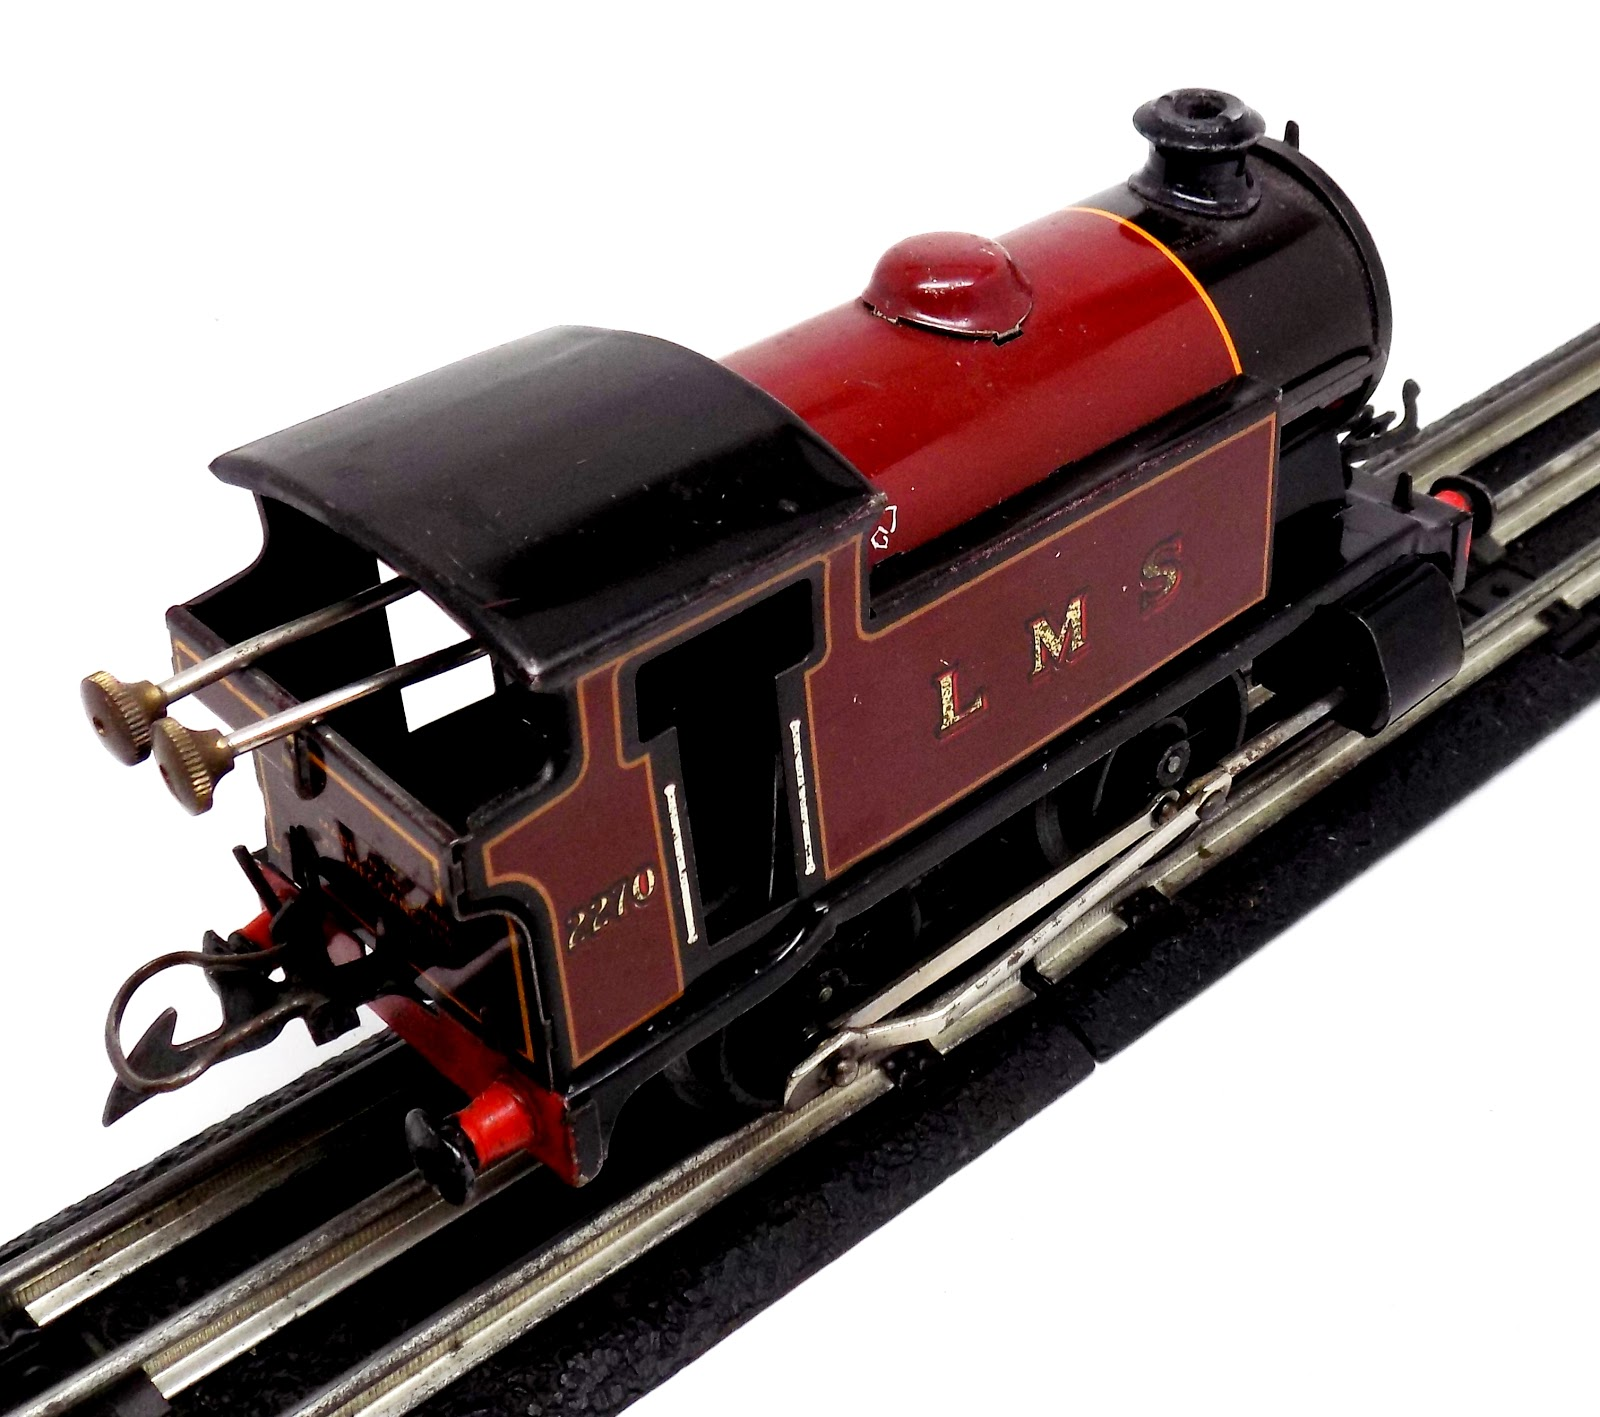 Toys and Stuff: TRAIN TIME: A Yank Does Hornby Pt 1 - Hornby